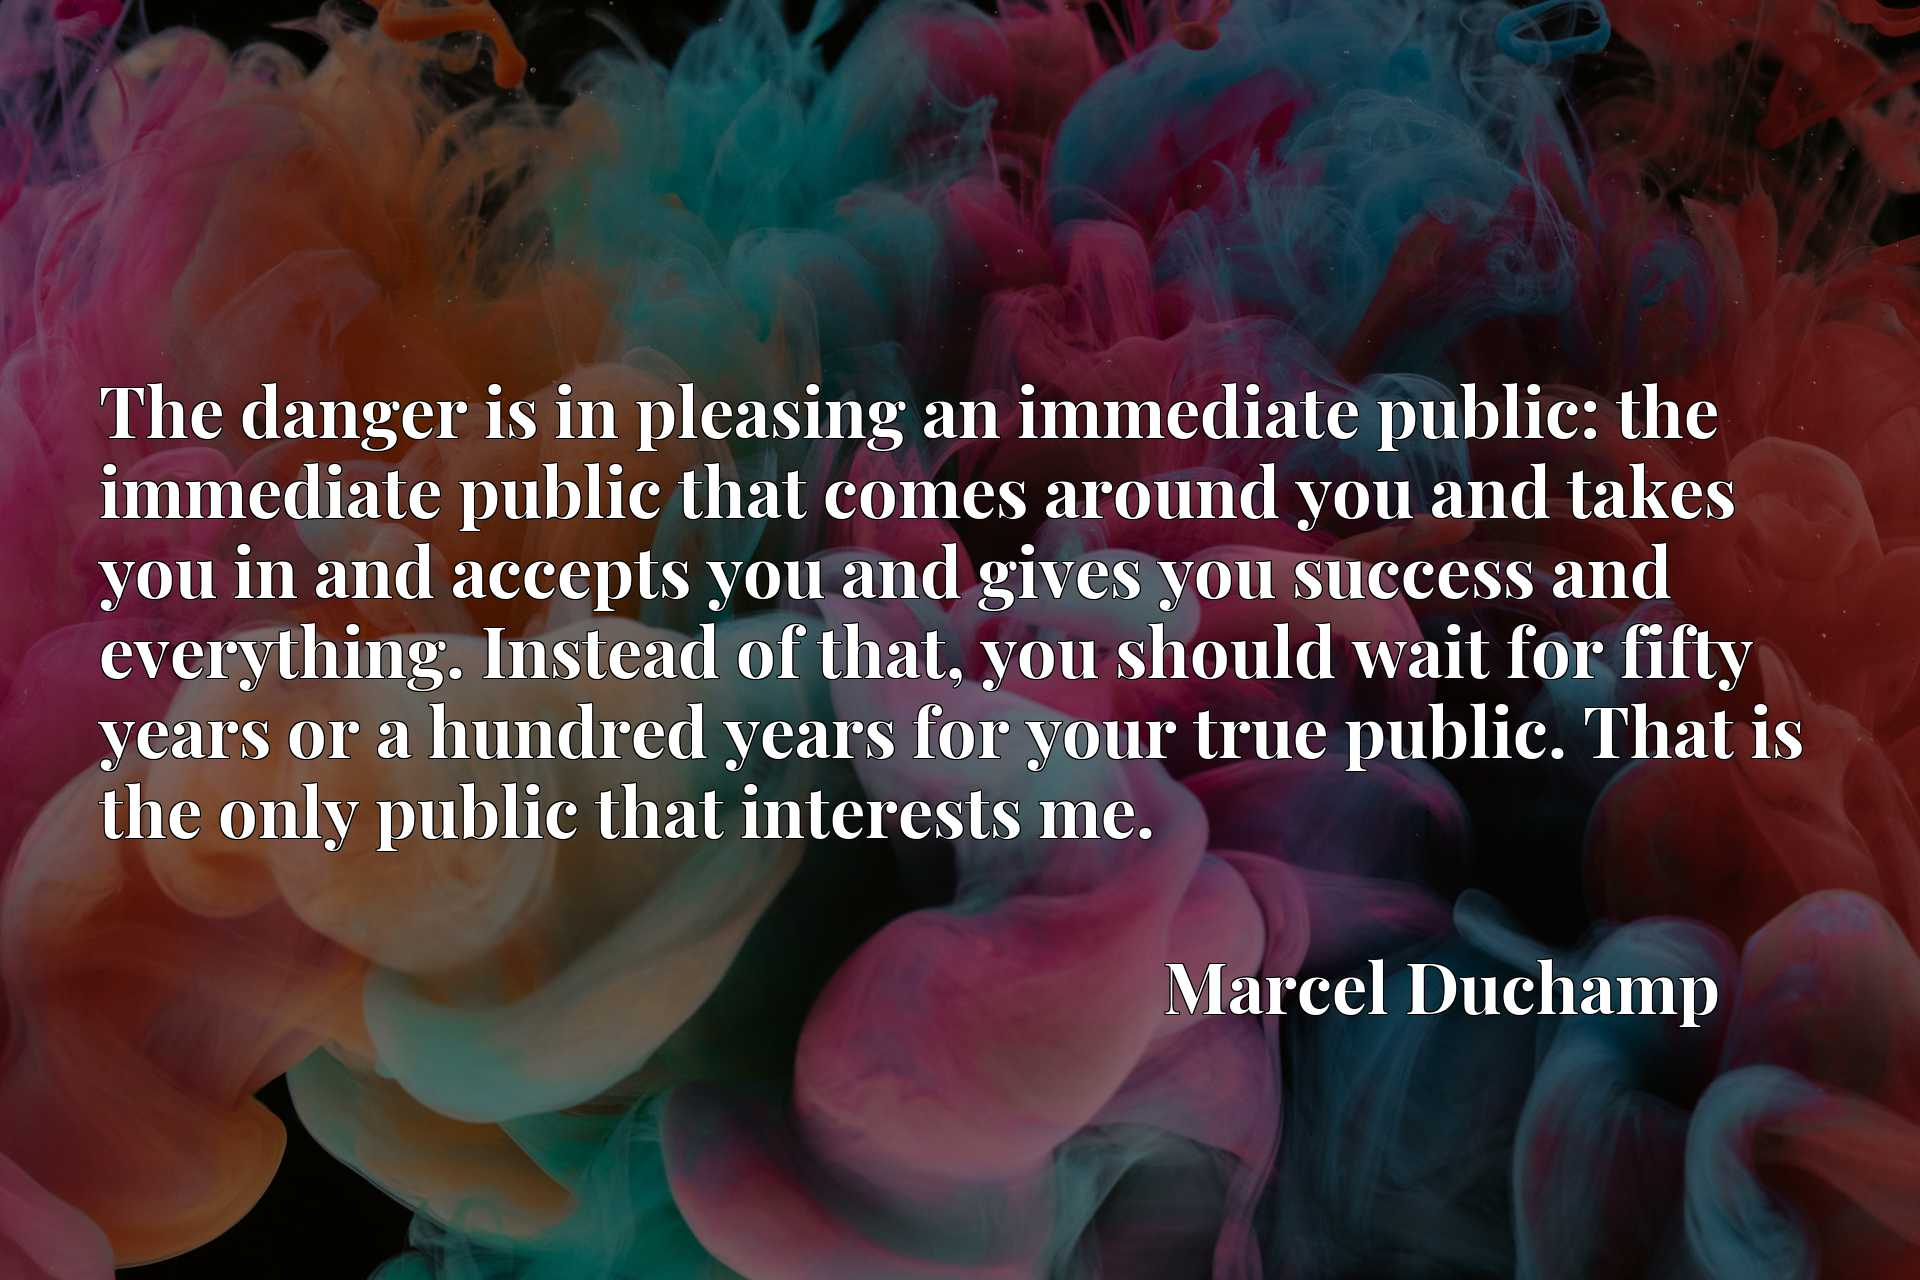 The danger is in pleasing an immediate public: the immediate public that comes around you and takes you in and accepts you and gives you success and everything. Instead of that, you should wait for fifty years or a hundred years for your true public. That is the only public that interests me.